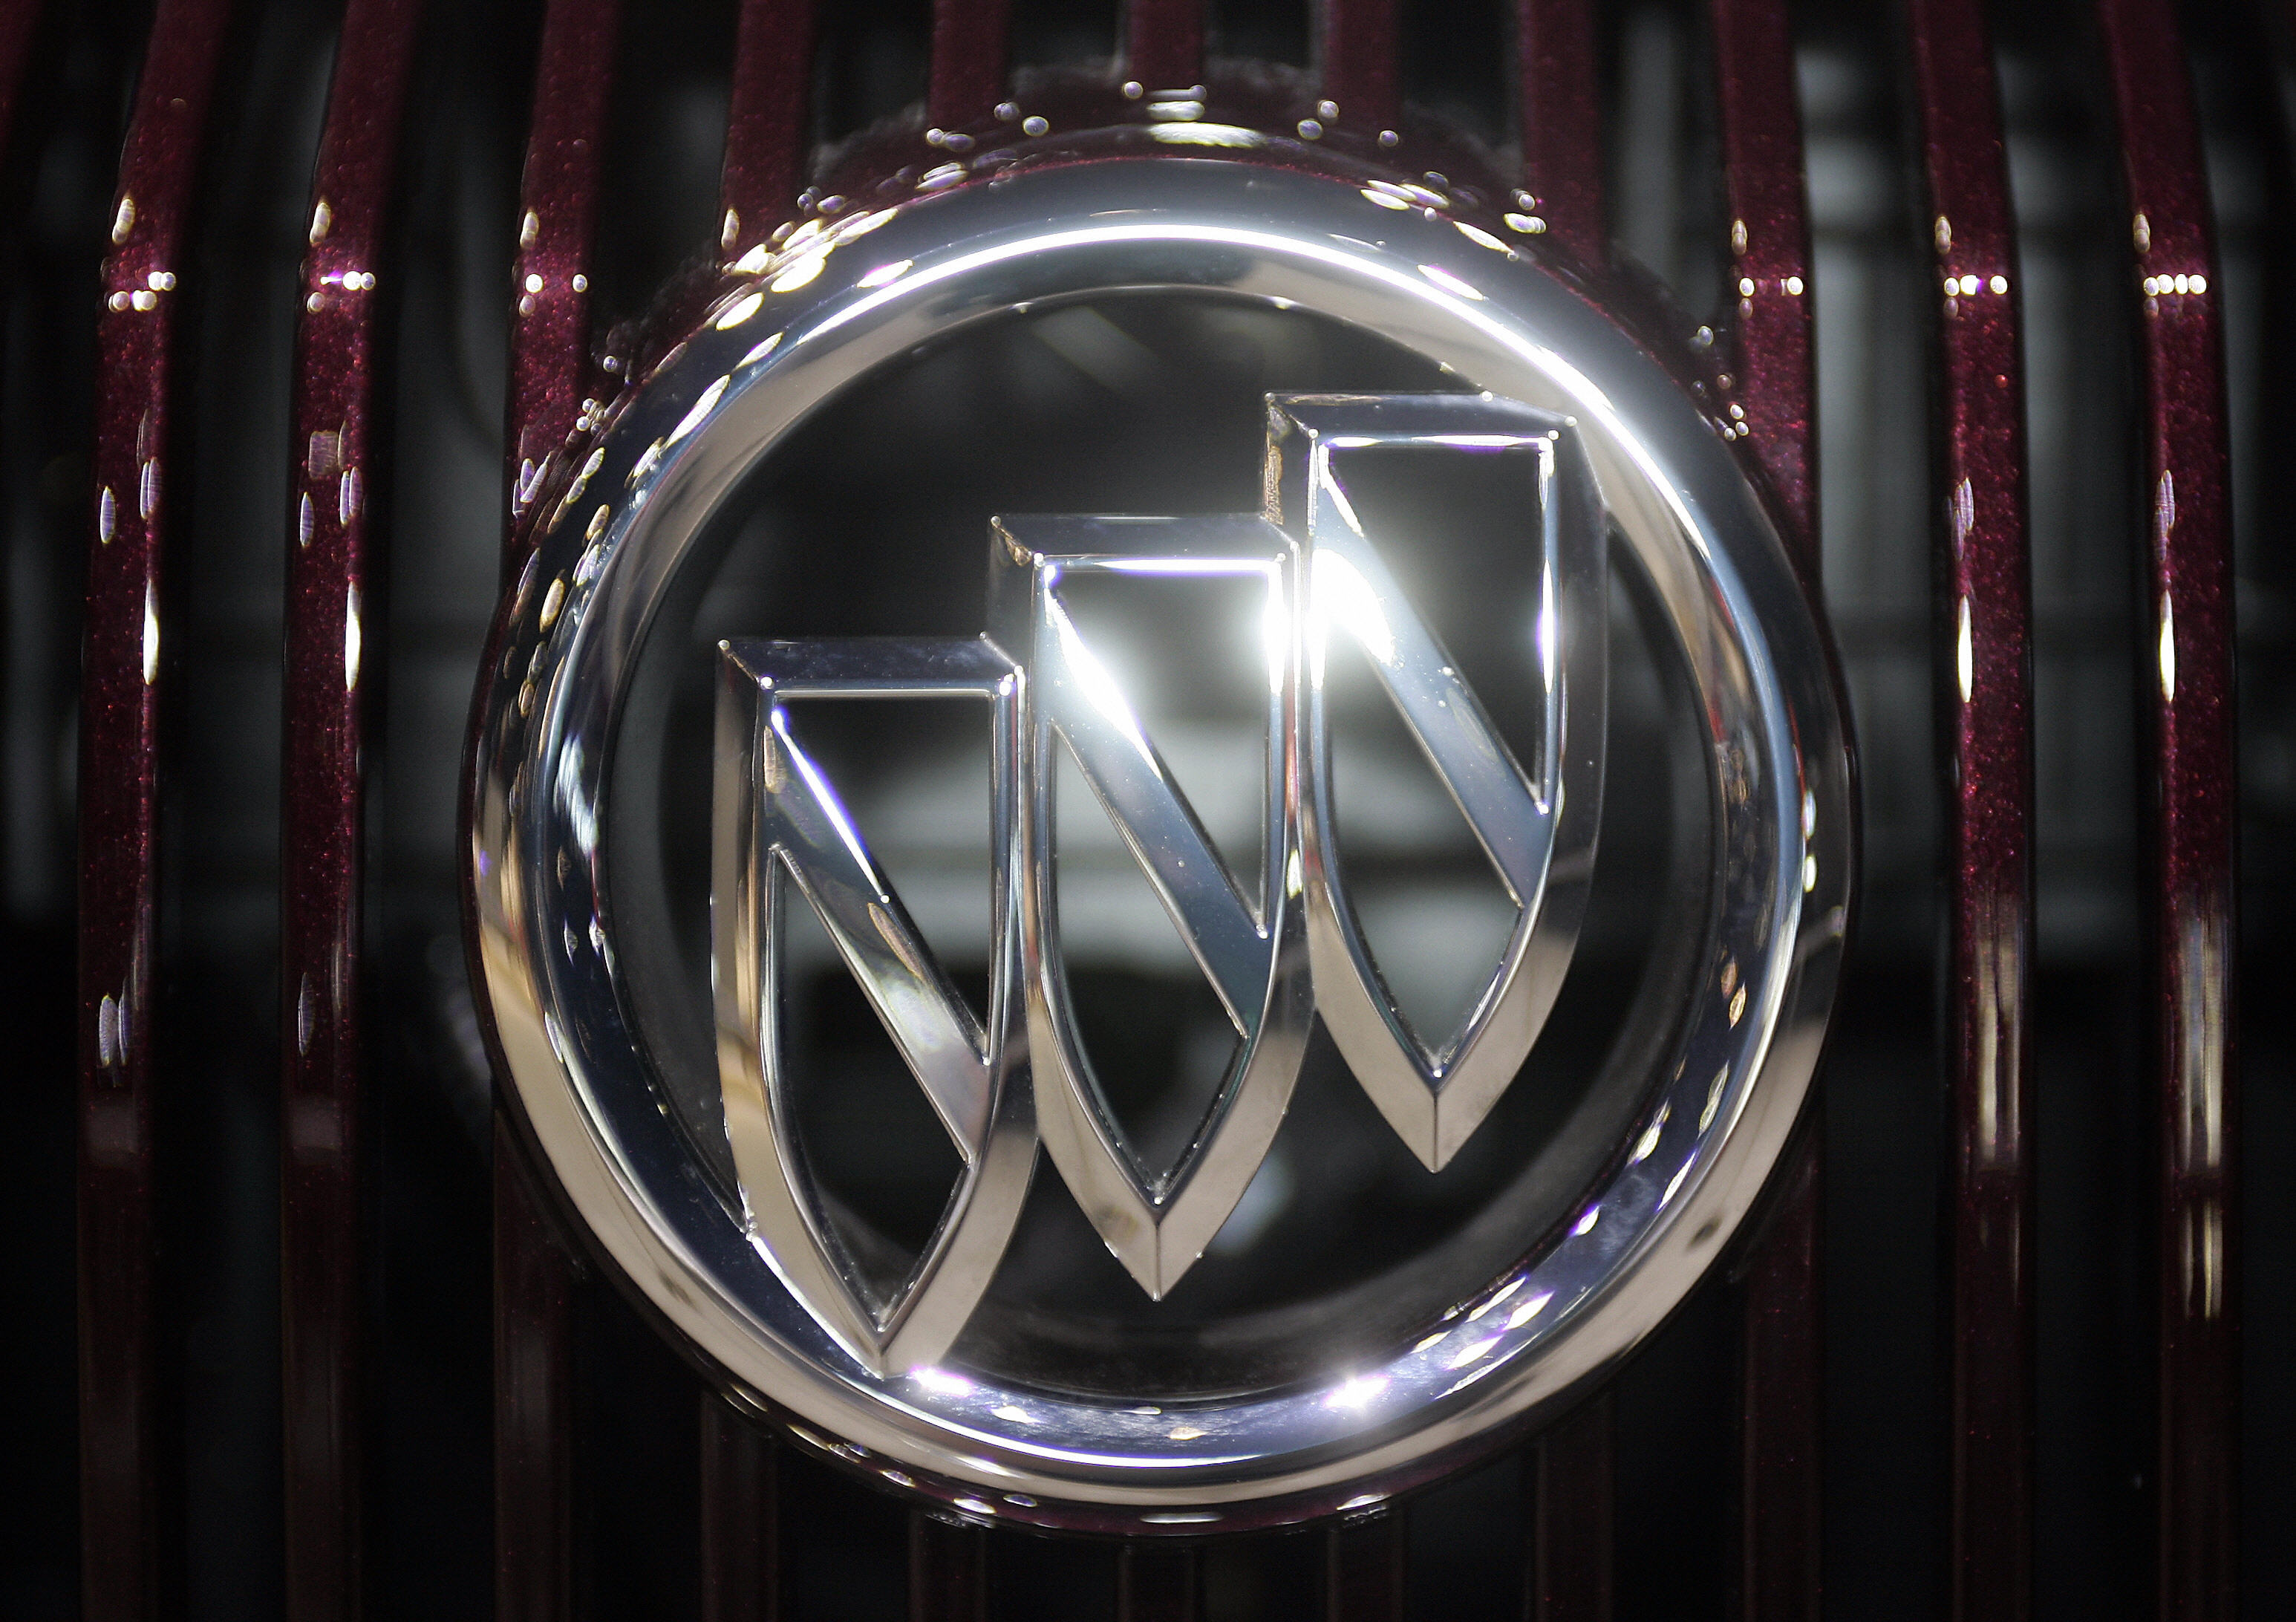 The Buick emblem on the grill of a new c